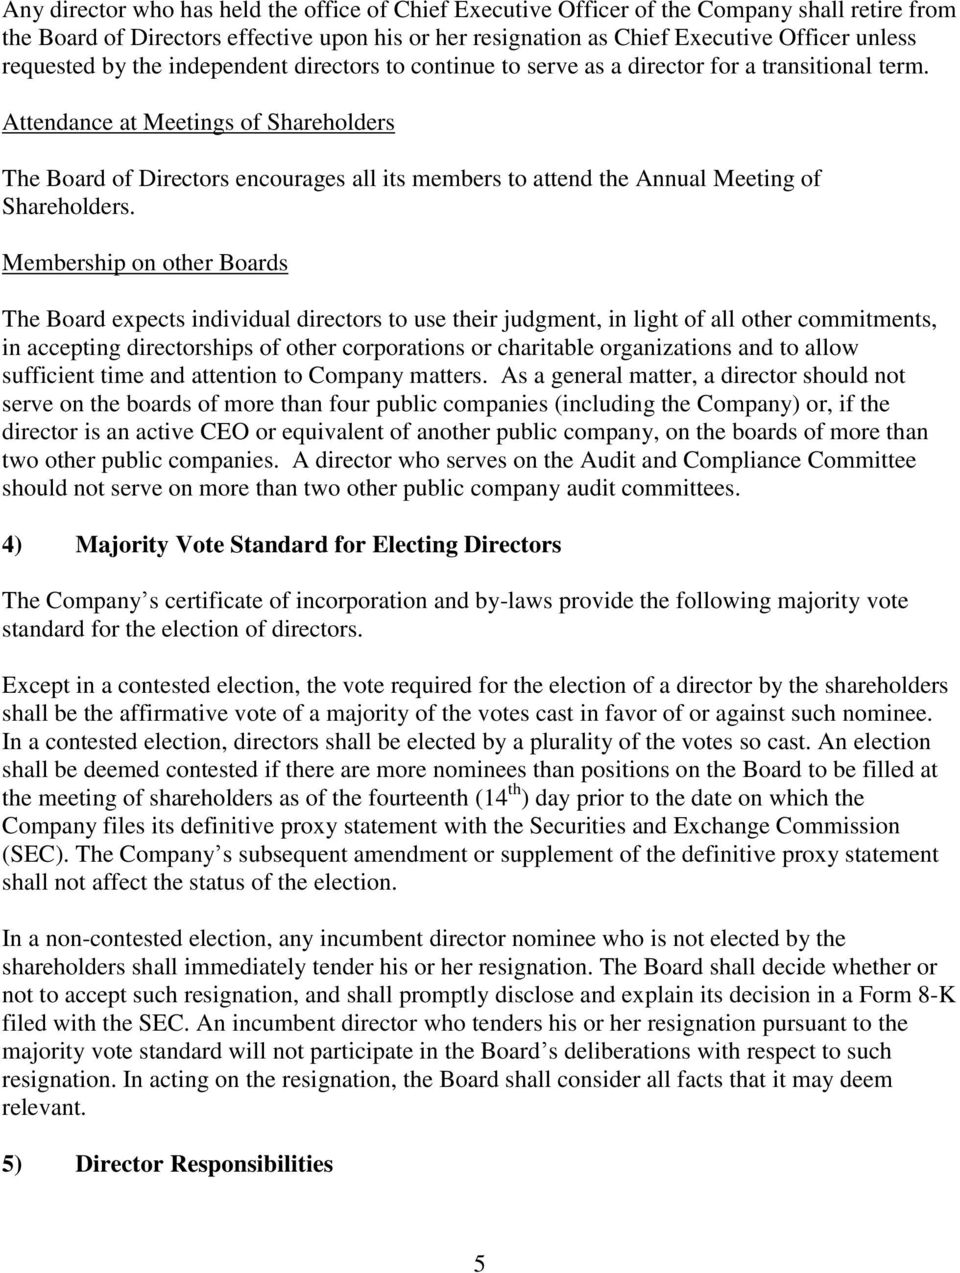 Attendance at Meetings of Shareholders The Board of Directors encourages all its members to attend the Annual Meeting of Shareholders.